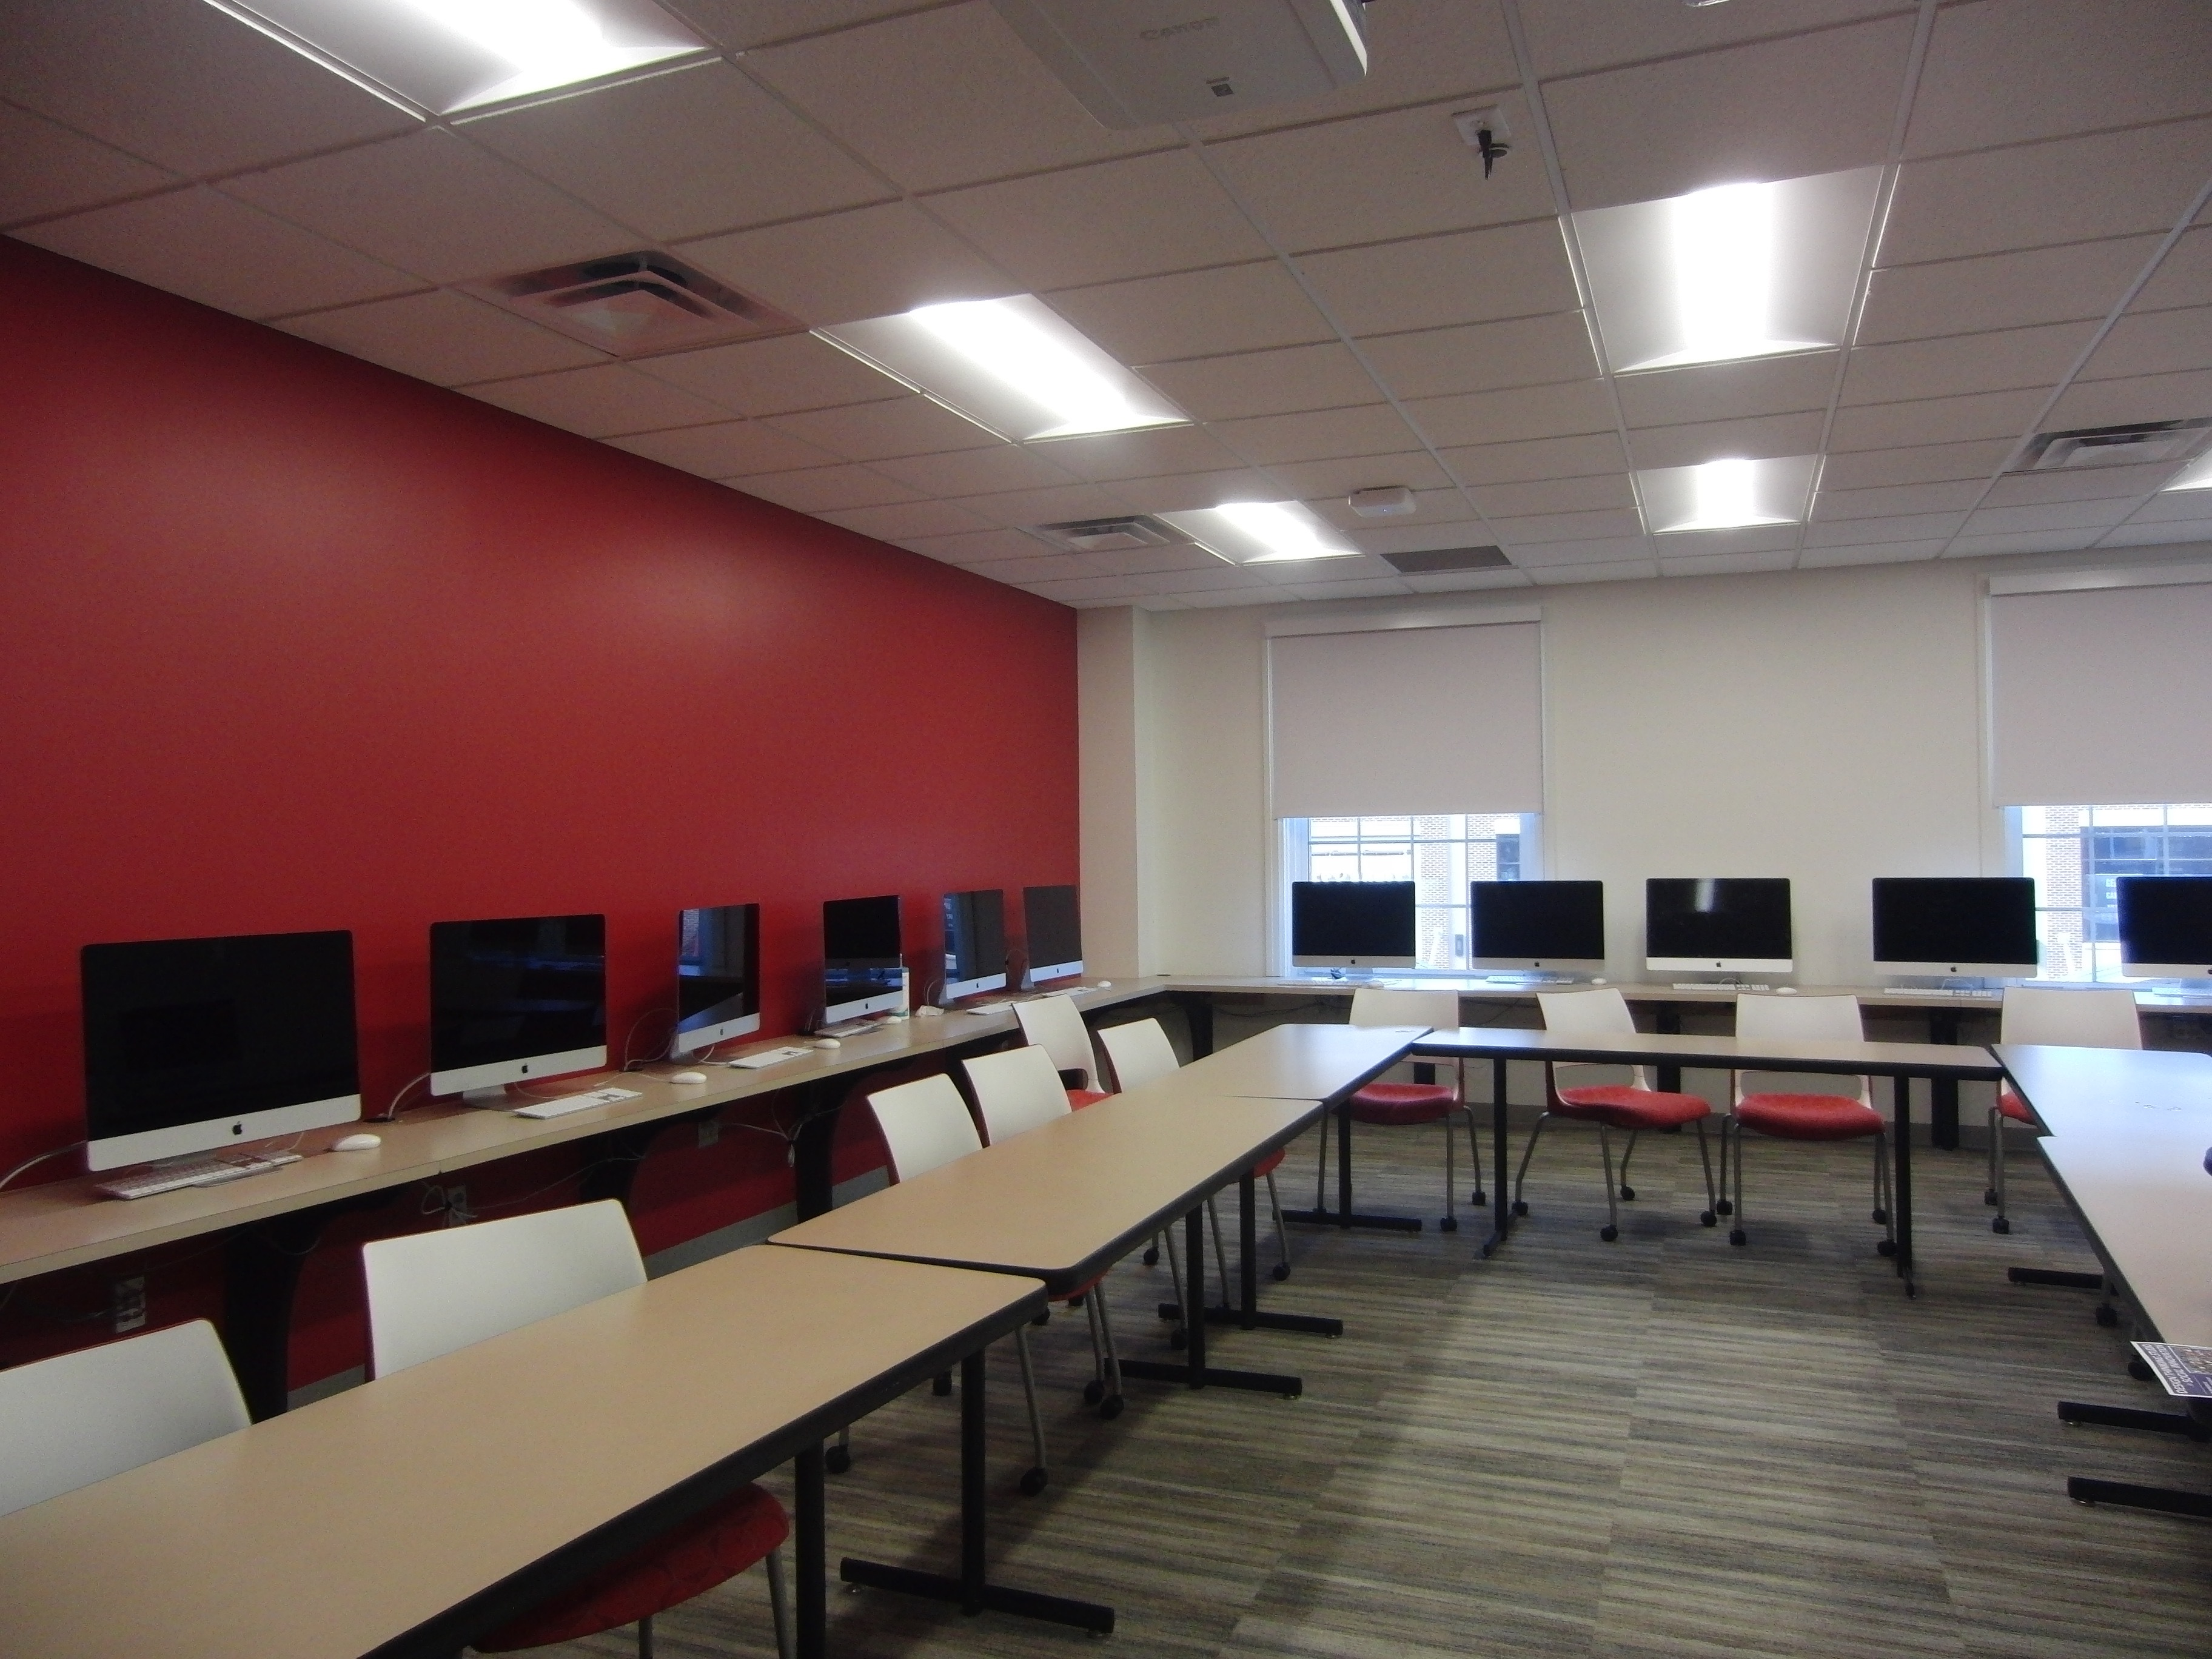 Photo of the space taken from a different angle showing computers along the wall and tables in the middle of the room